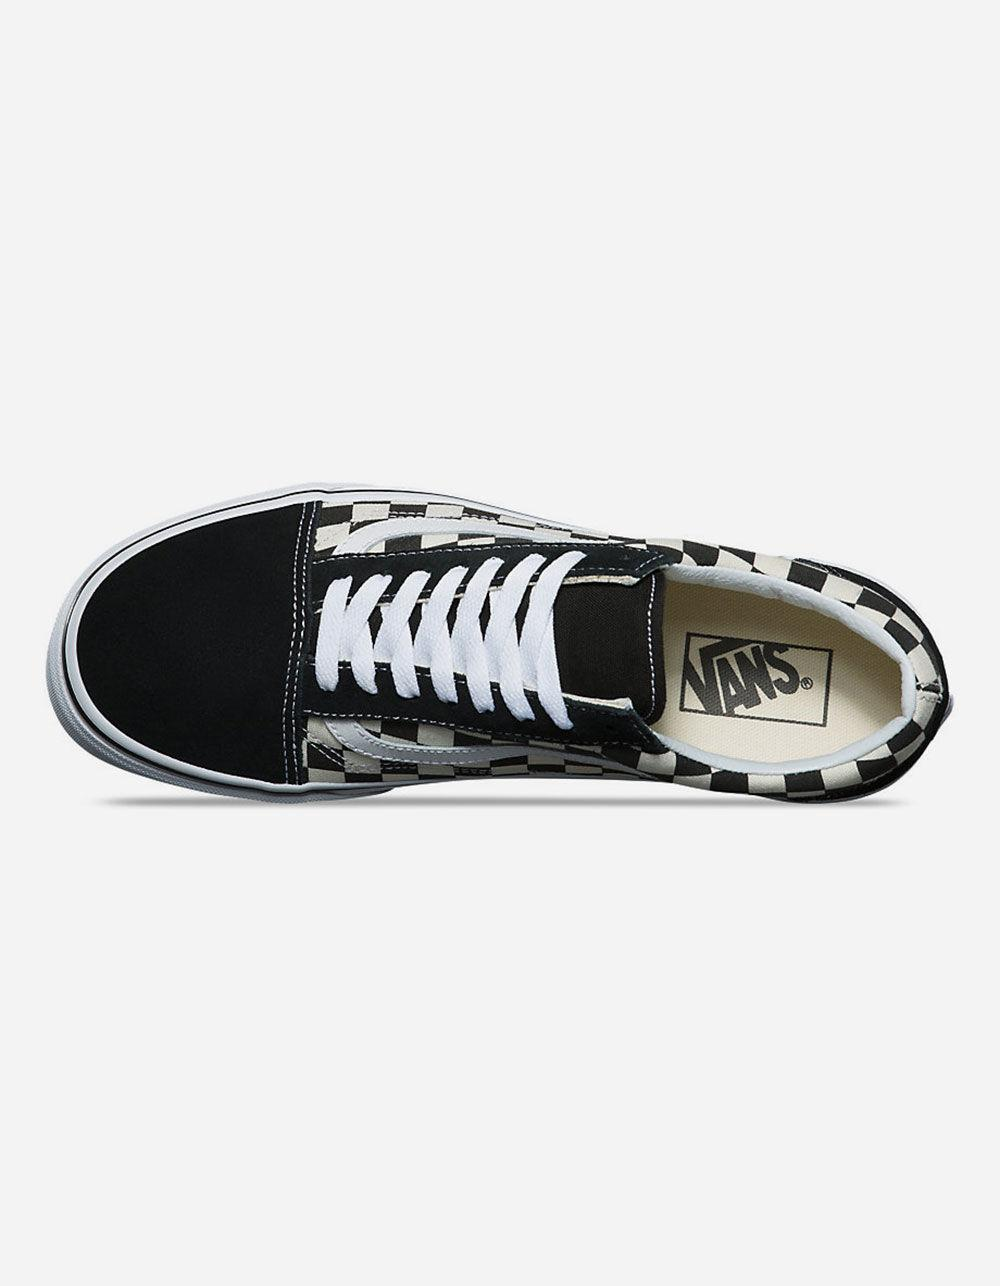 c91fc7f7d3a Vans - Primary Check Old Skool Black   White Shoes for Men - Lyst. View  fullscreen